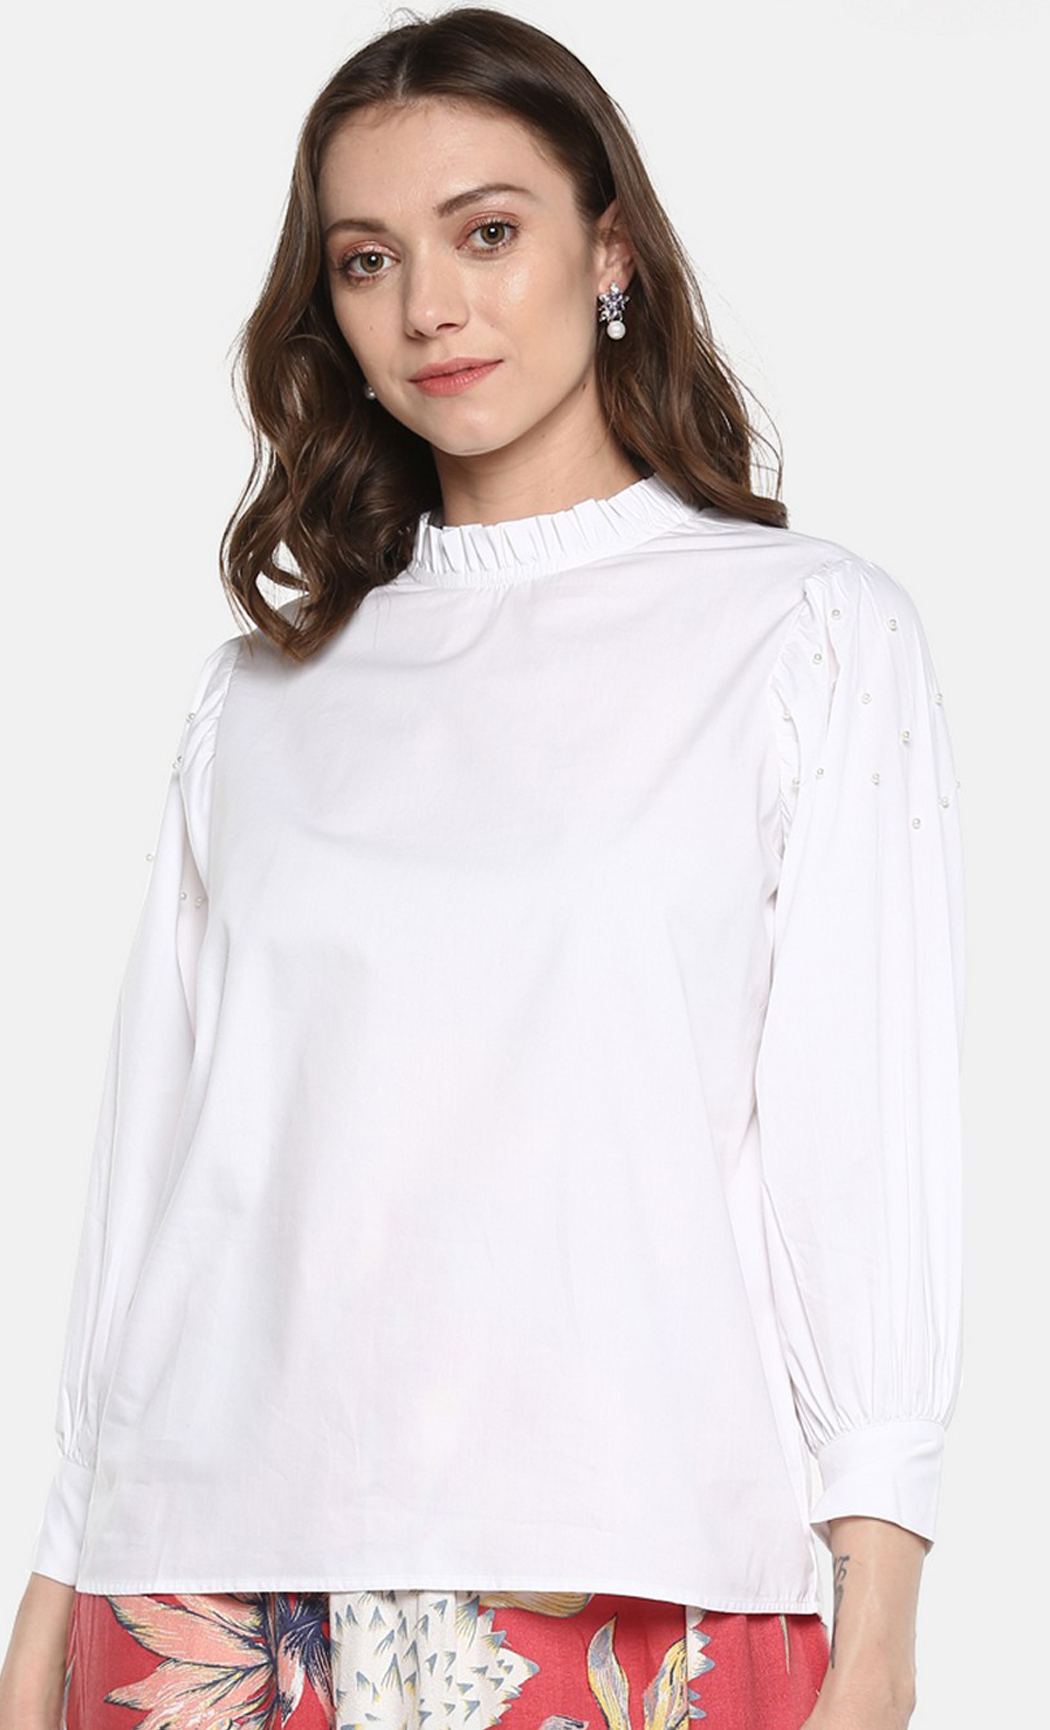 White Wonders and Whims Beaded Top. Buy Online